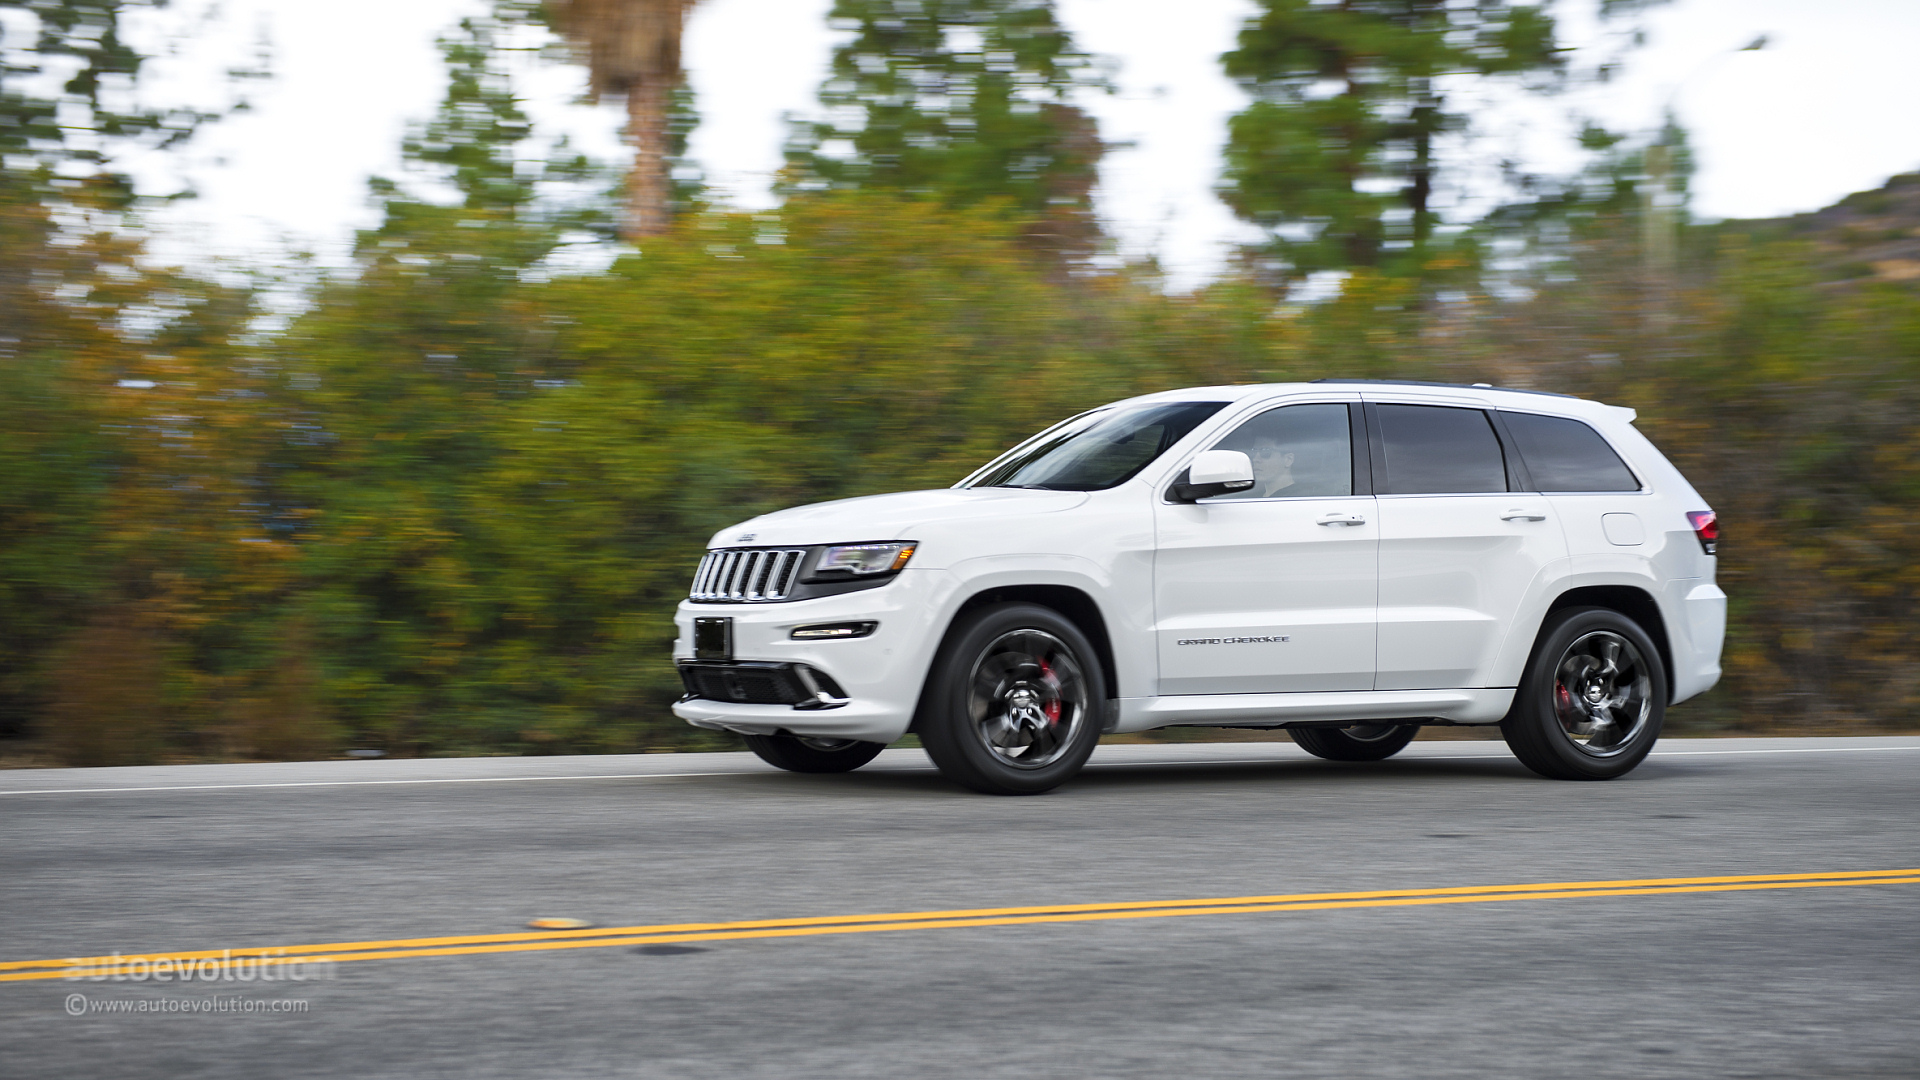 grand srt motor b driven test mind over cherokee jeep